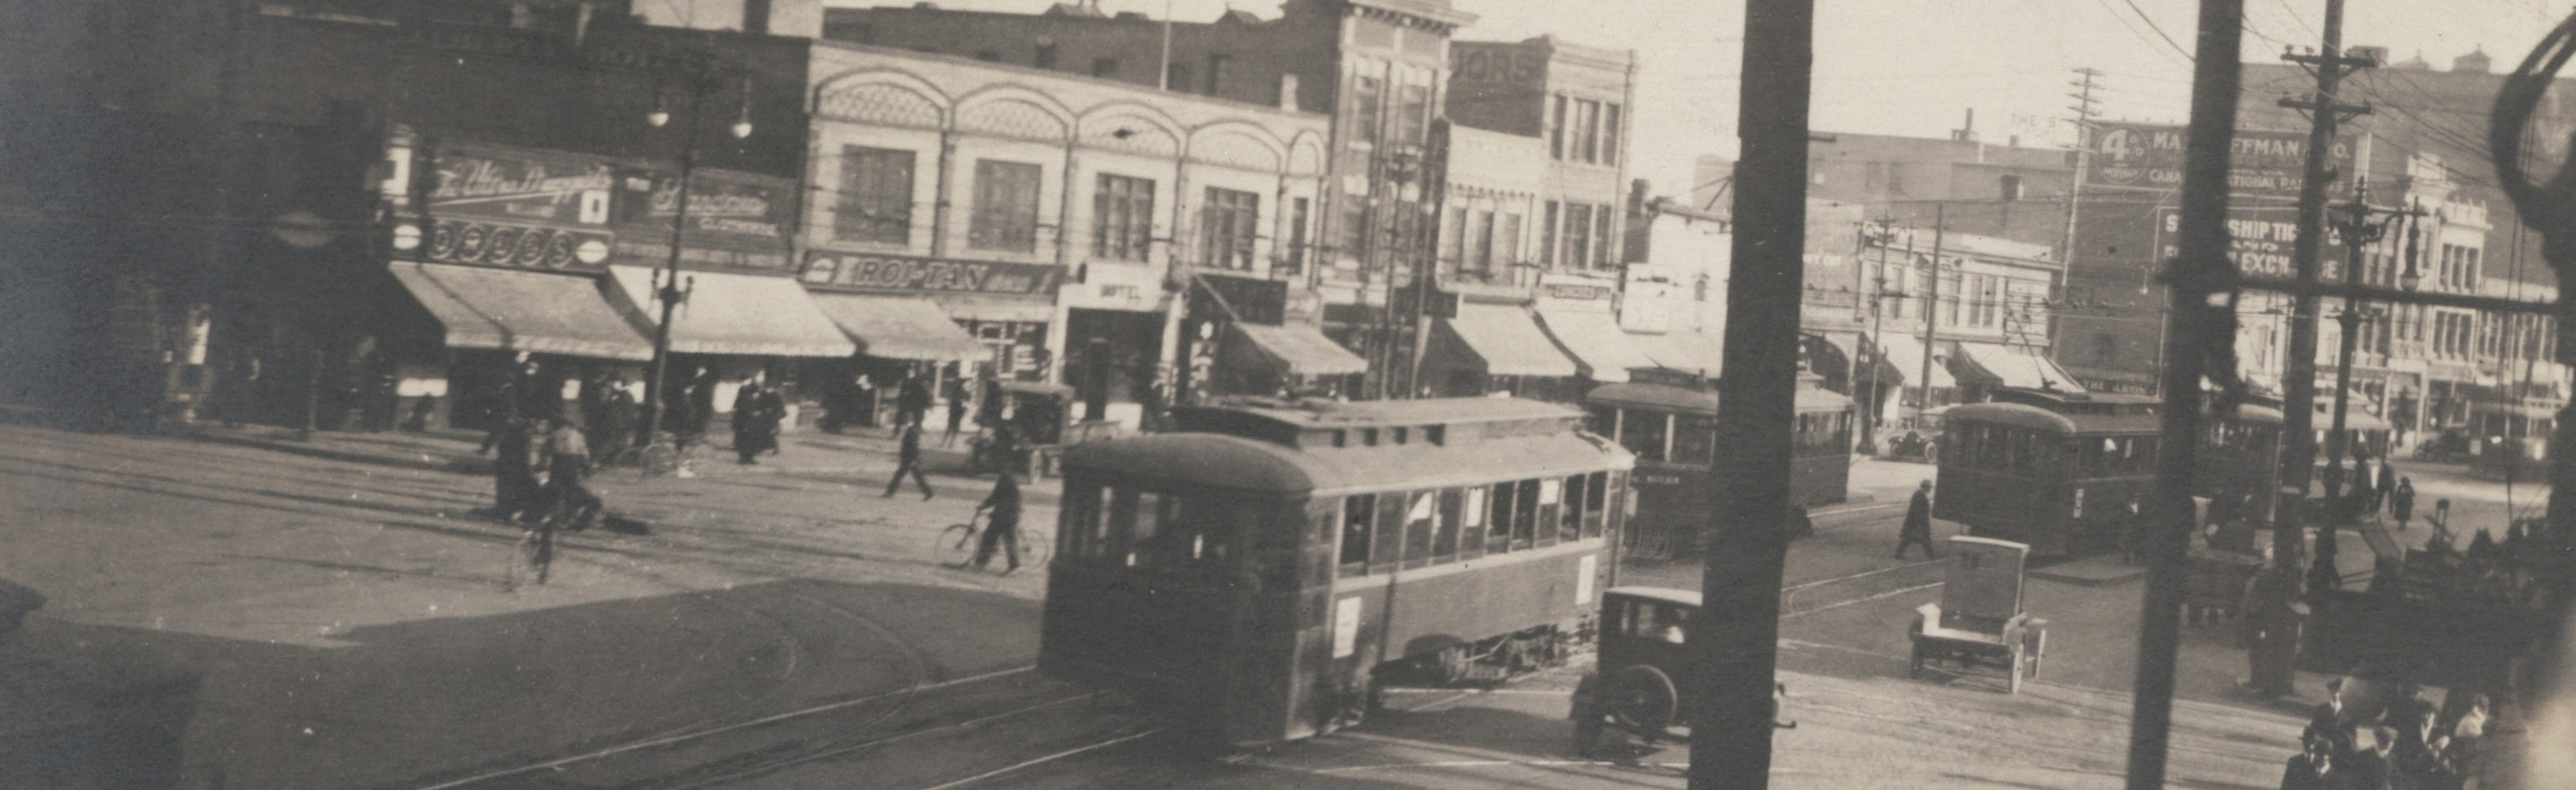 View of Main Street south from Higgins showing Alberta Hotel, [1940s?]